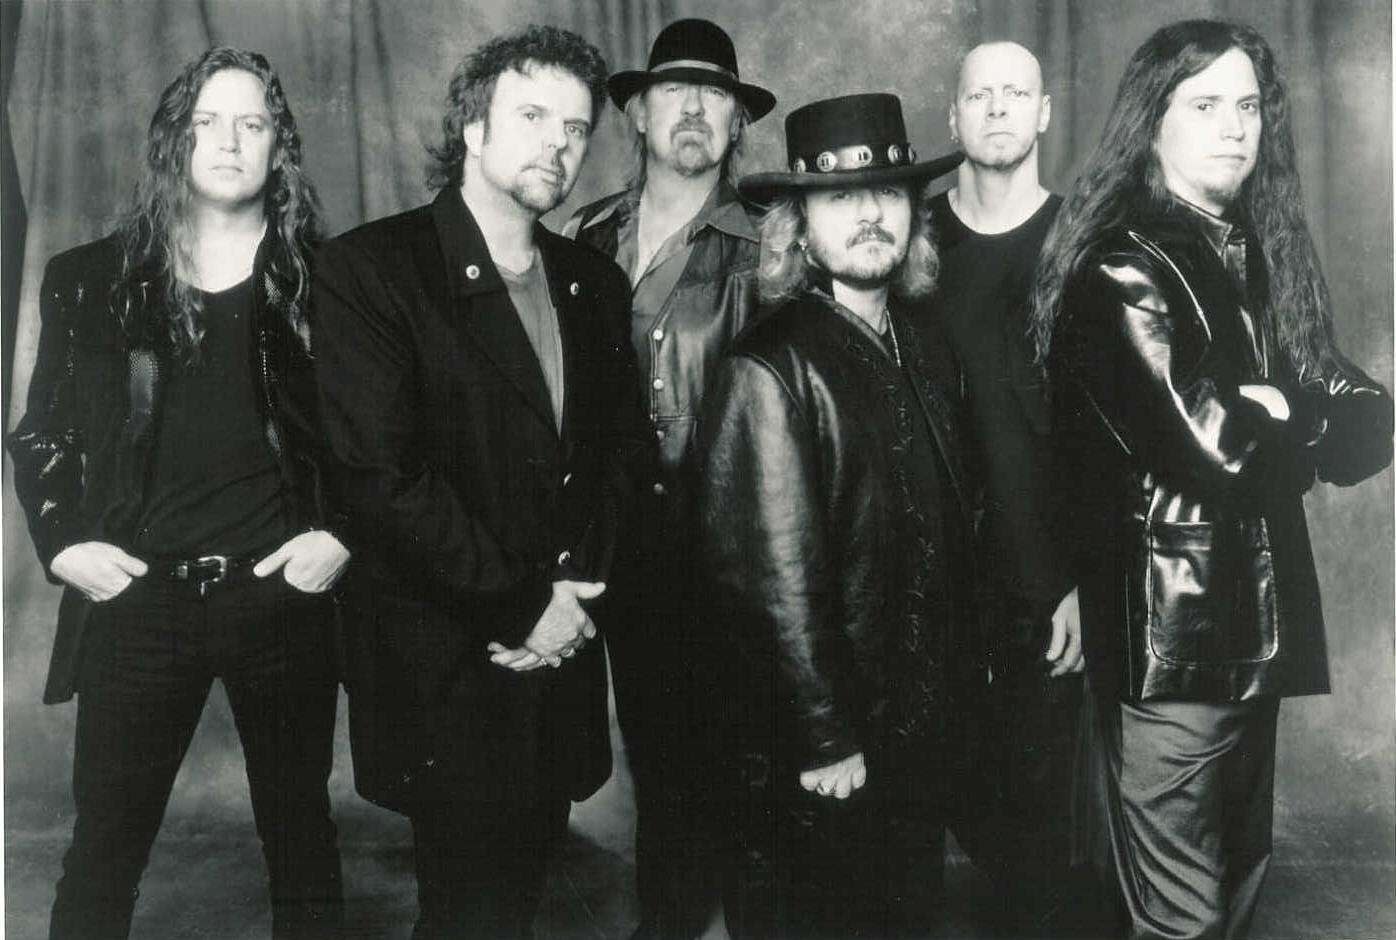 Book the band 38 Special